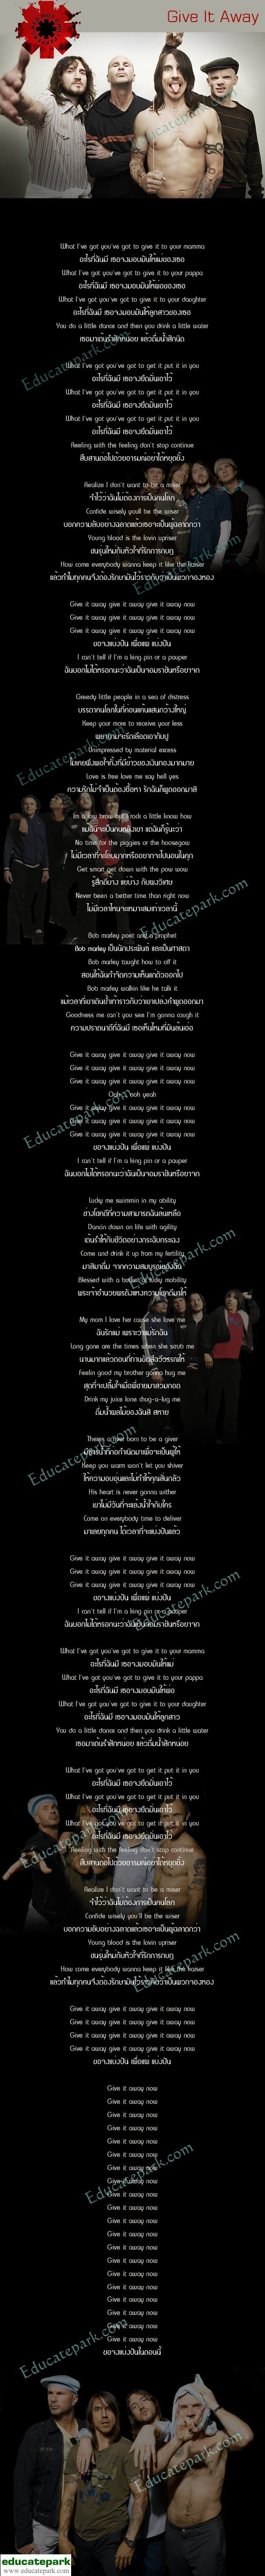 แปลเพลง Give It Away - Red Hot Chili Peppers